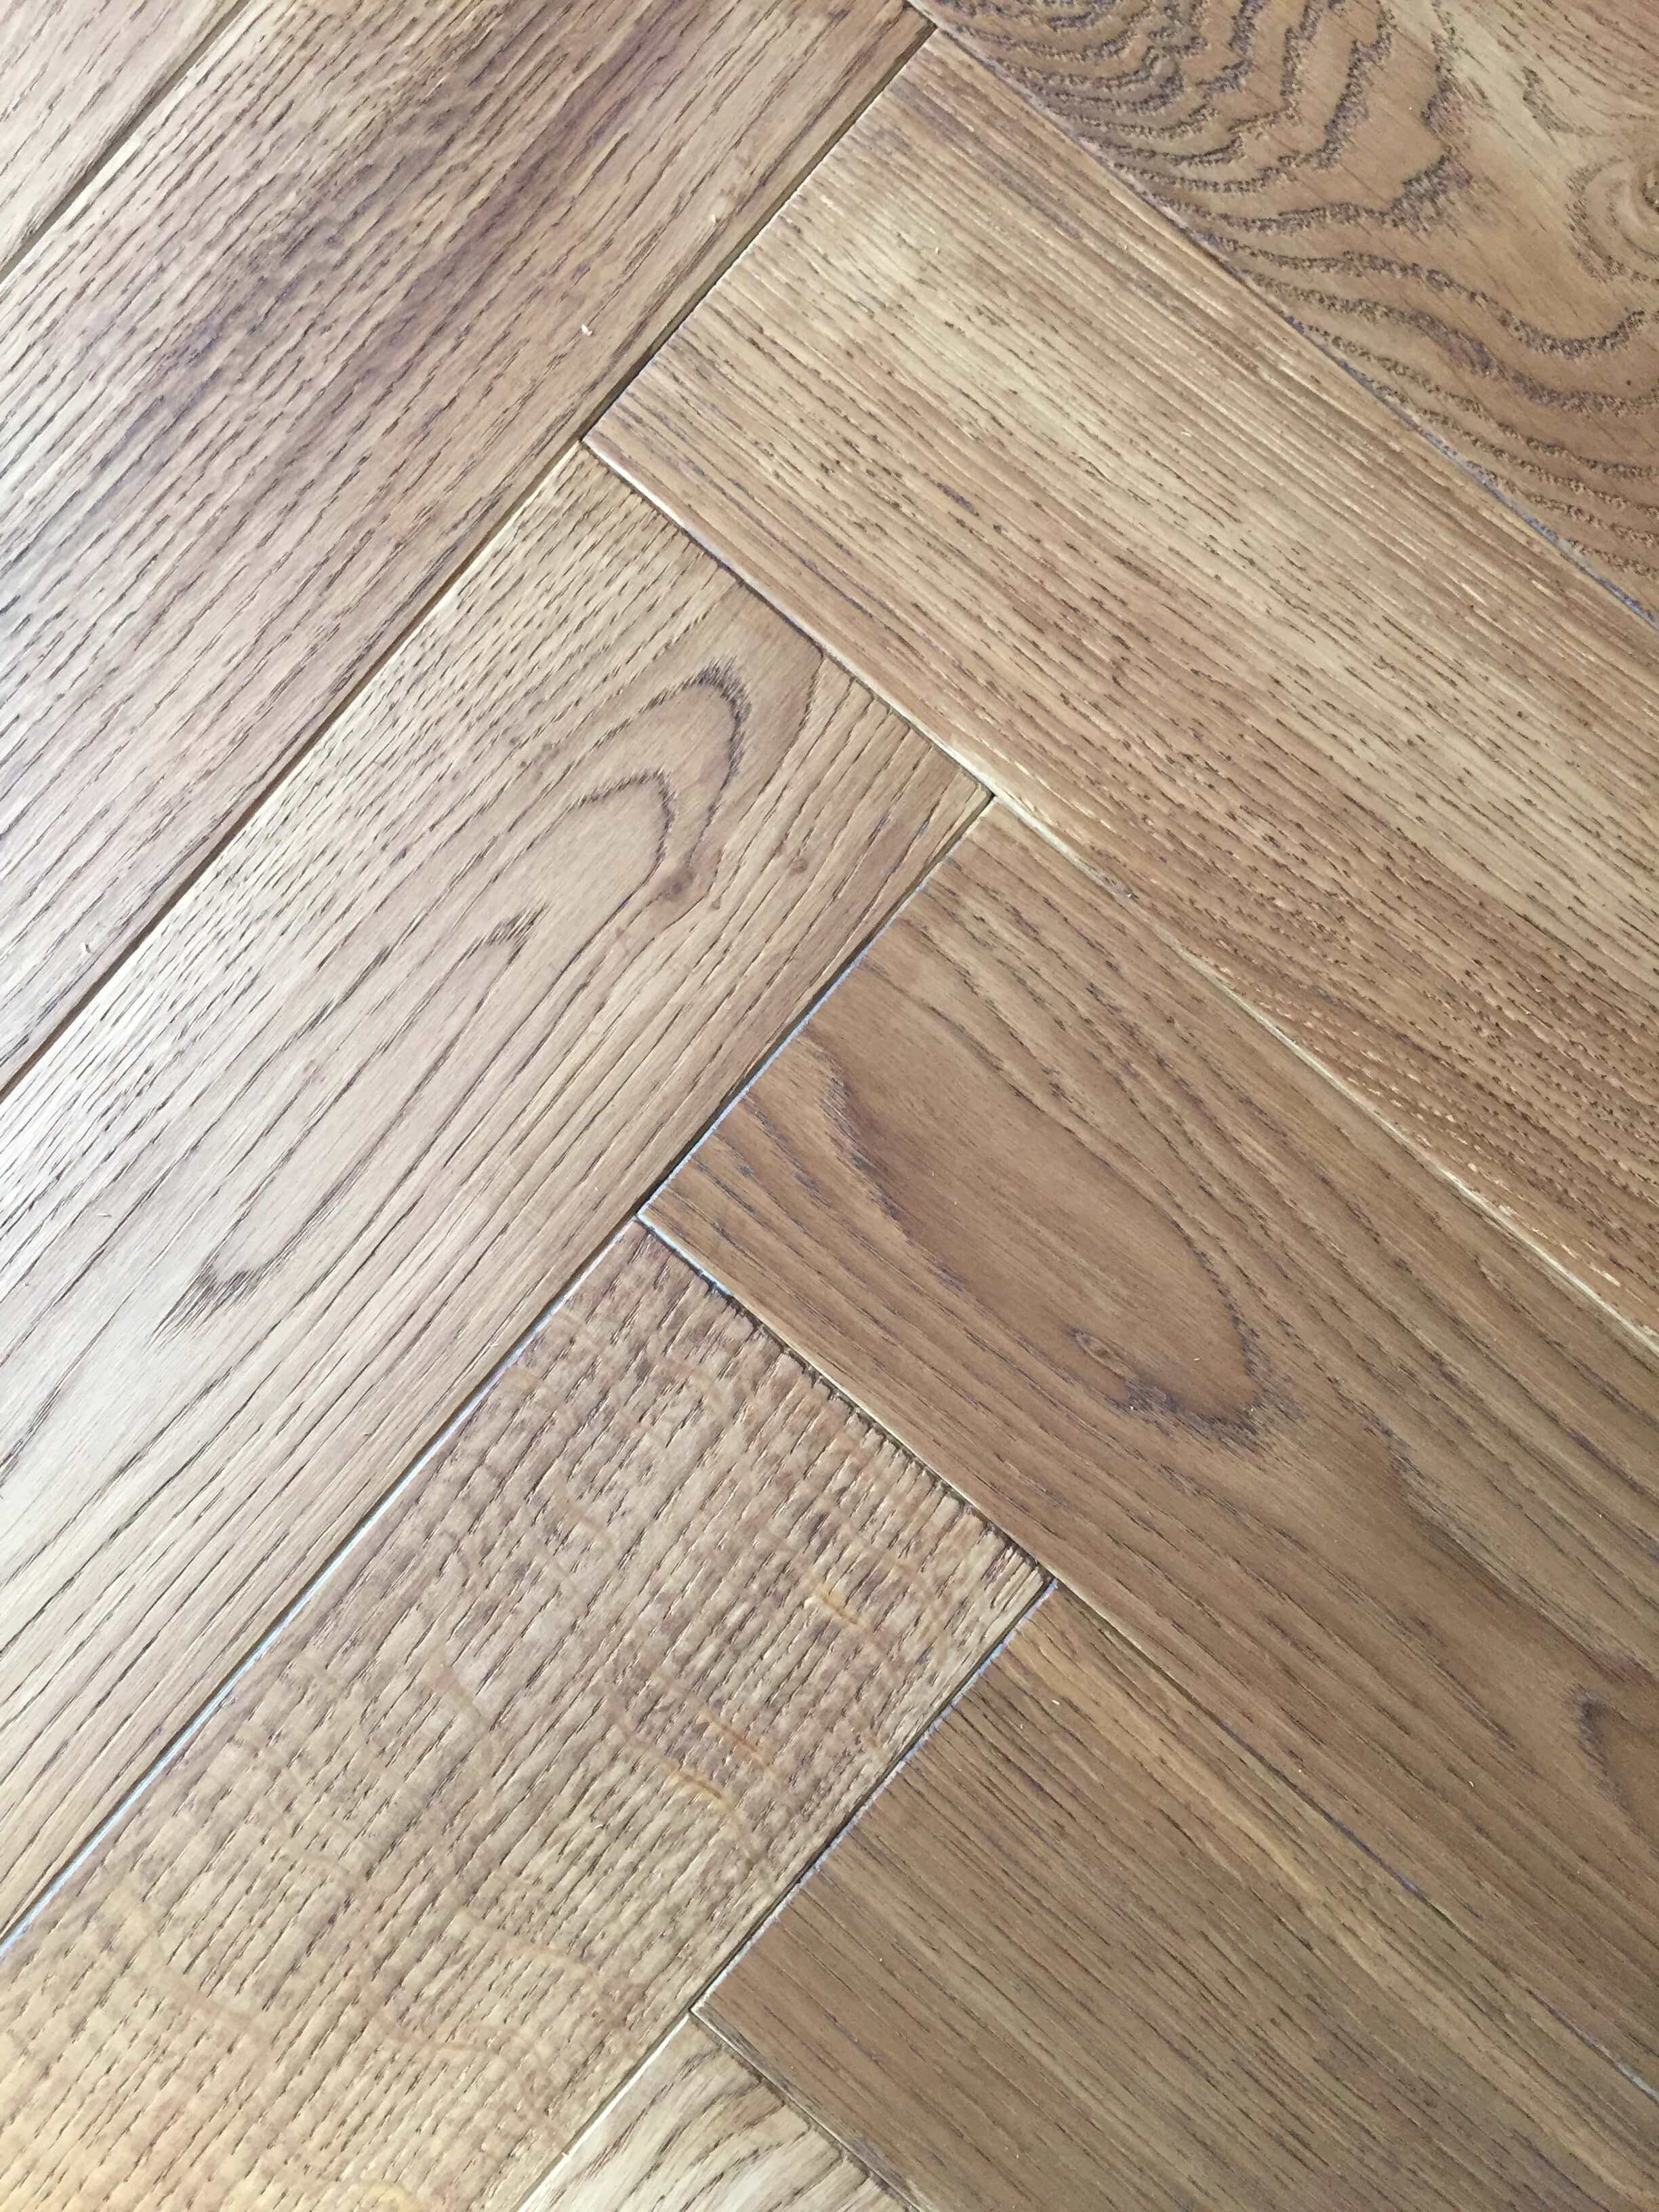 cheap laminate hardwood flooring of roll out laminate wood flooring bamboo vs hardwood flooring new pertaining to roll out laminate wood flooring bamboo vs hardwood flooring new hotel od barcelona projekt parklex